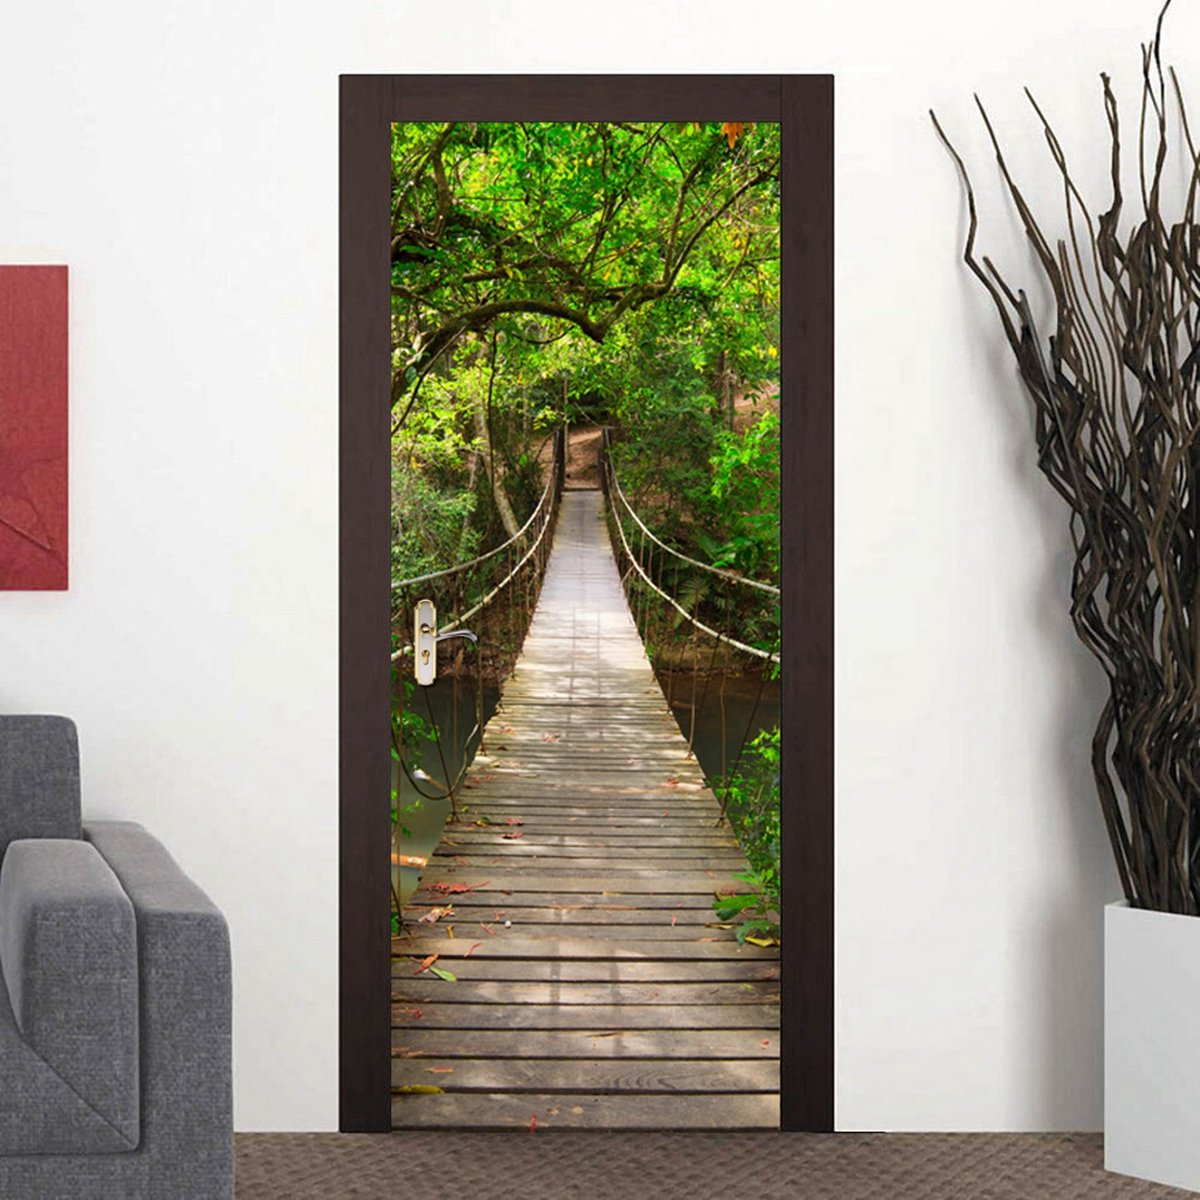 77x200cm Diy Mural Wood Bridge Waterproof Decal 3d Bedroom